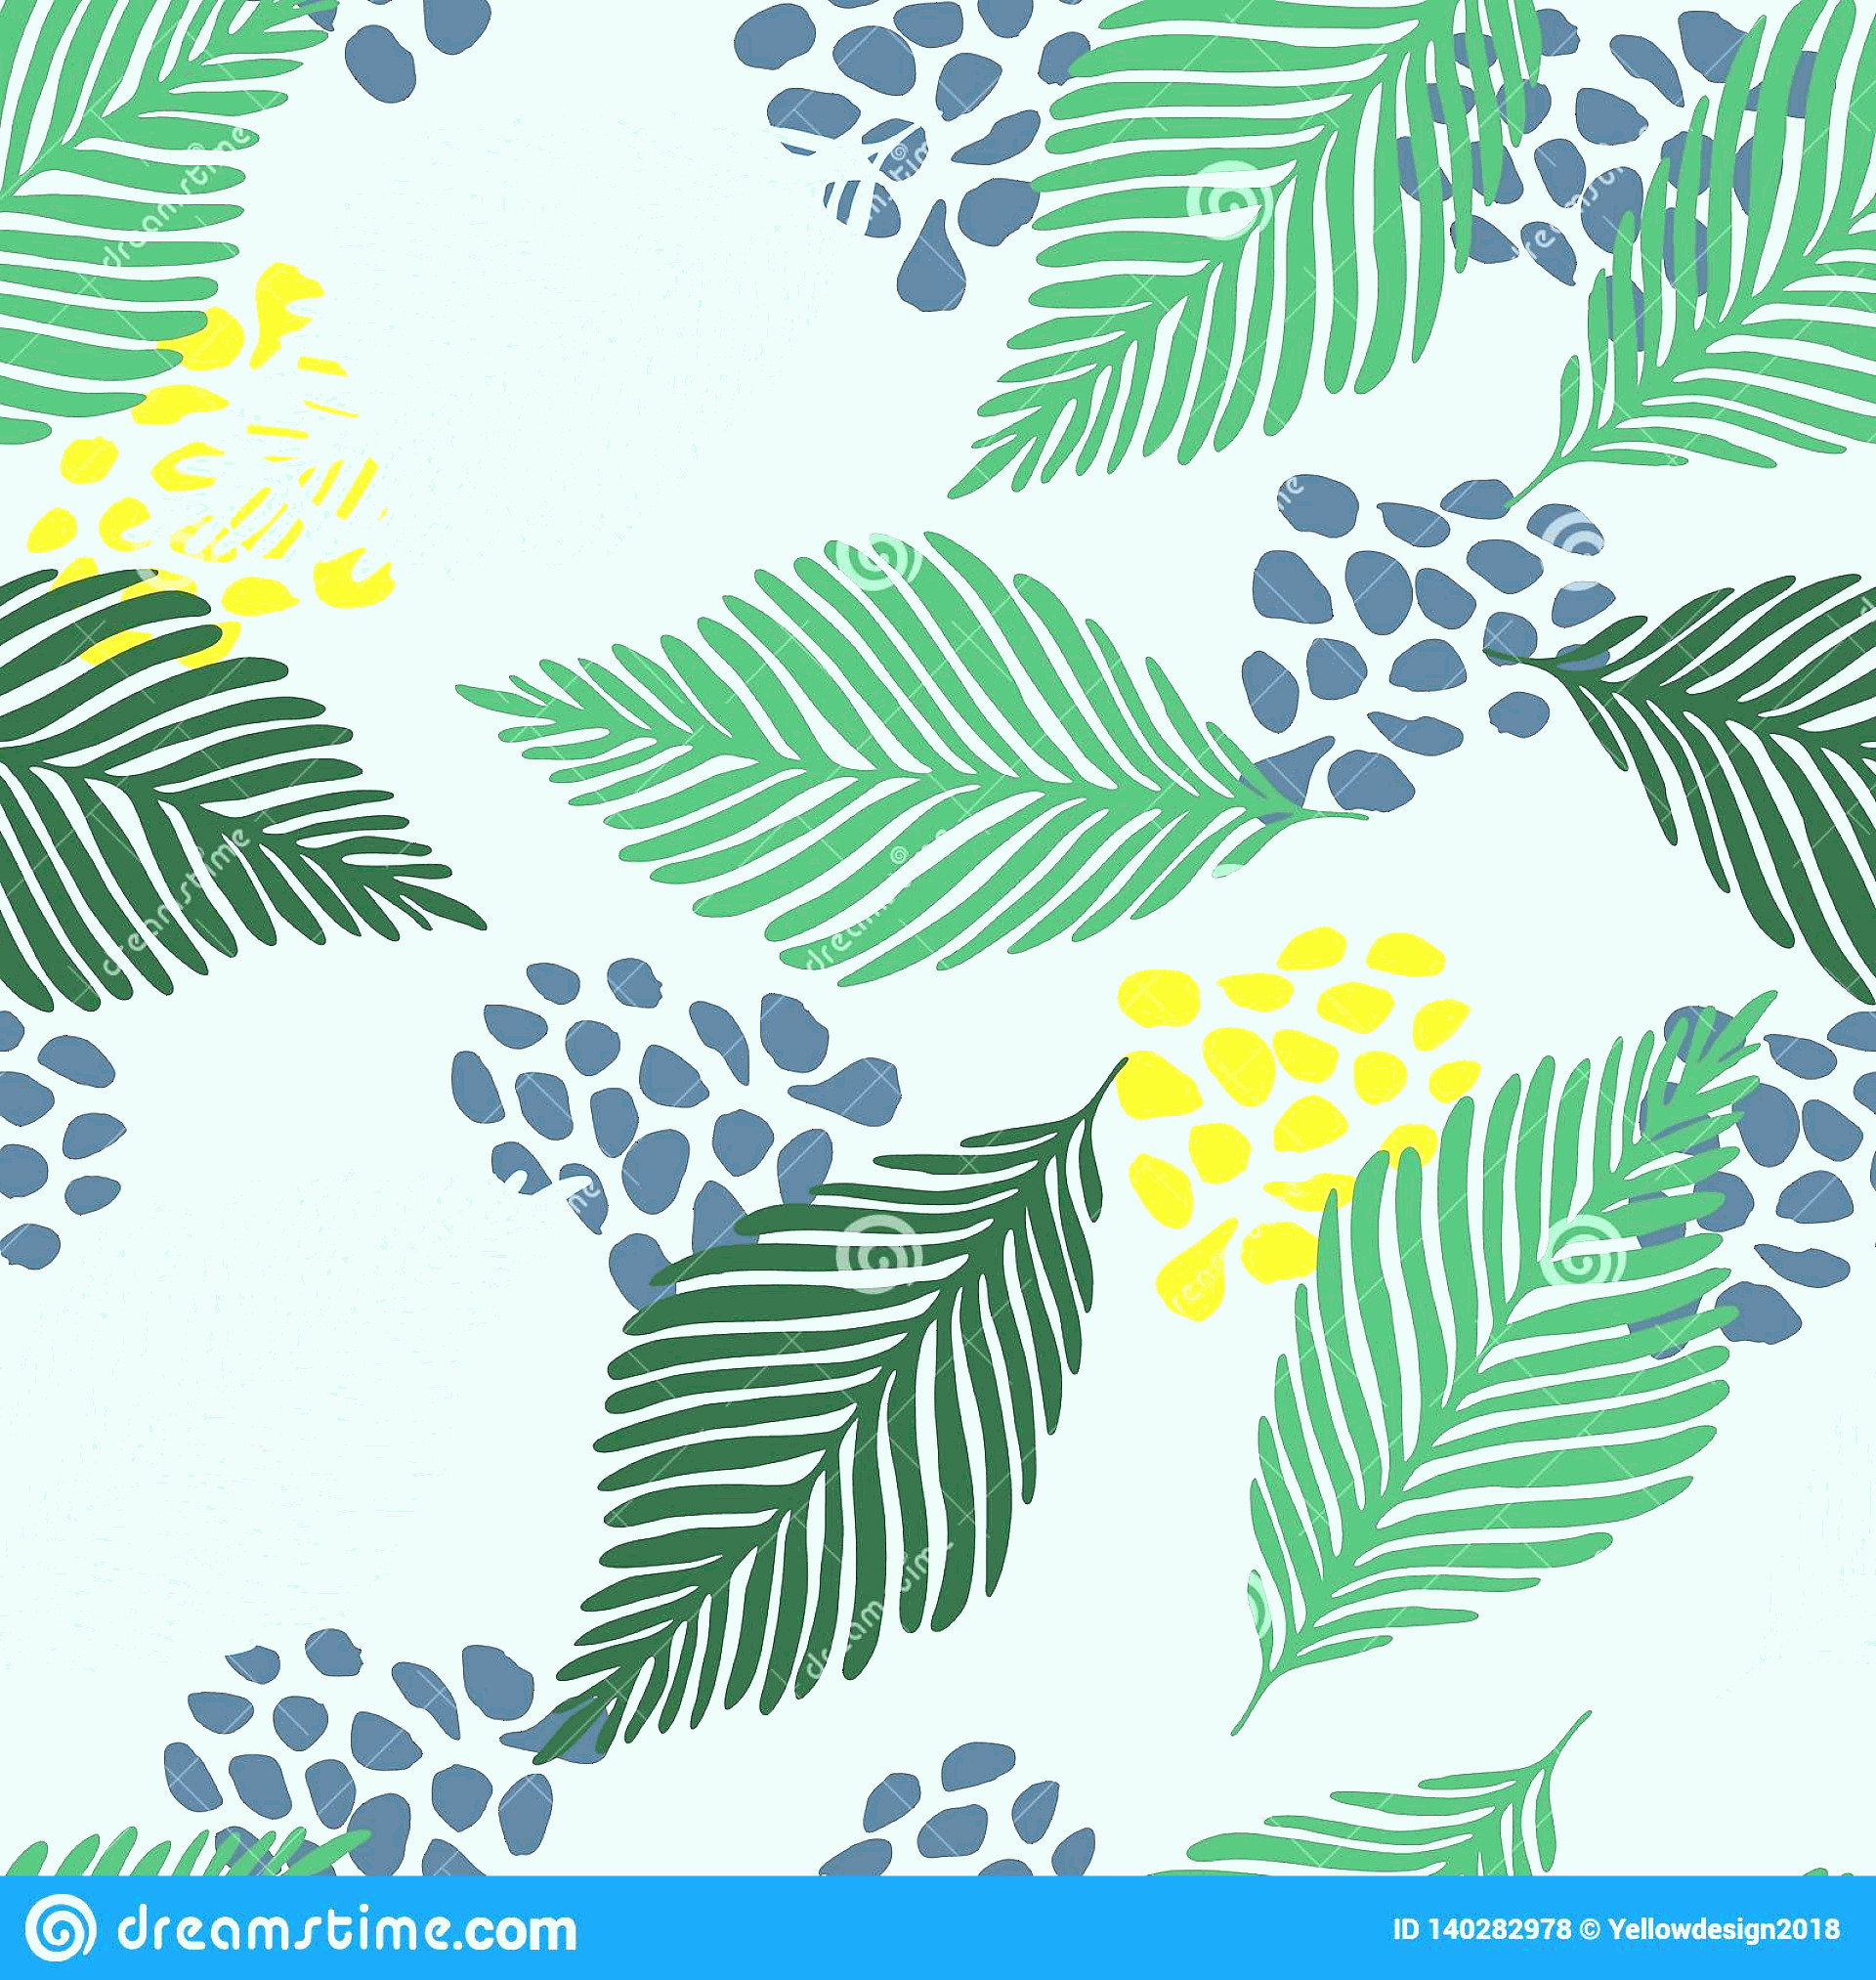 Contemporary Wallpaper Art Vector: Abstract Modern Contemporary Art Style Vector Illustration Floral Collage Seamless Pattern Exotic Jungle Plants Texture Wallpaper Image